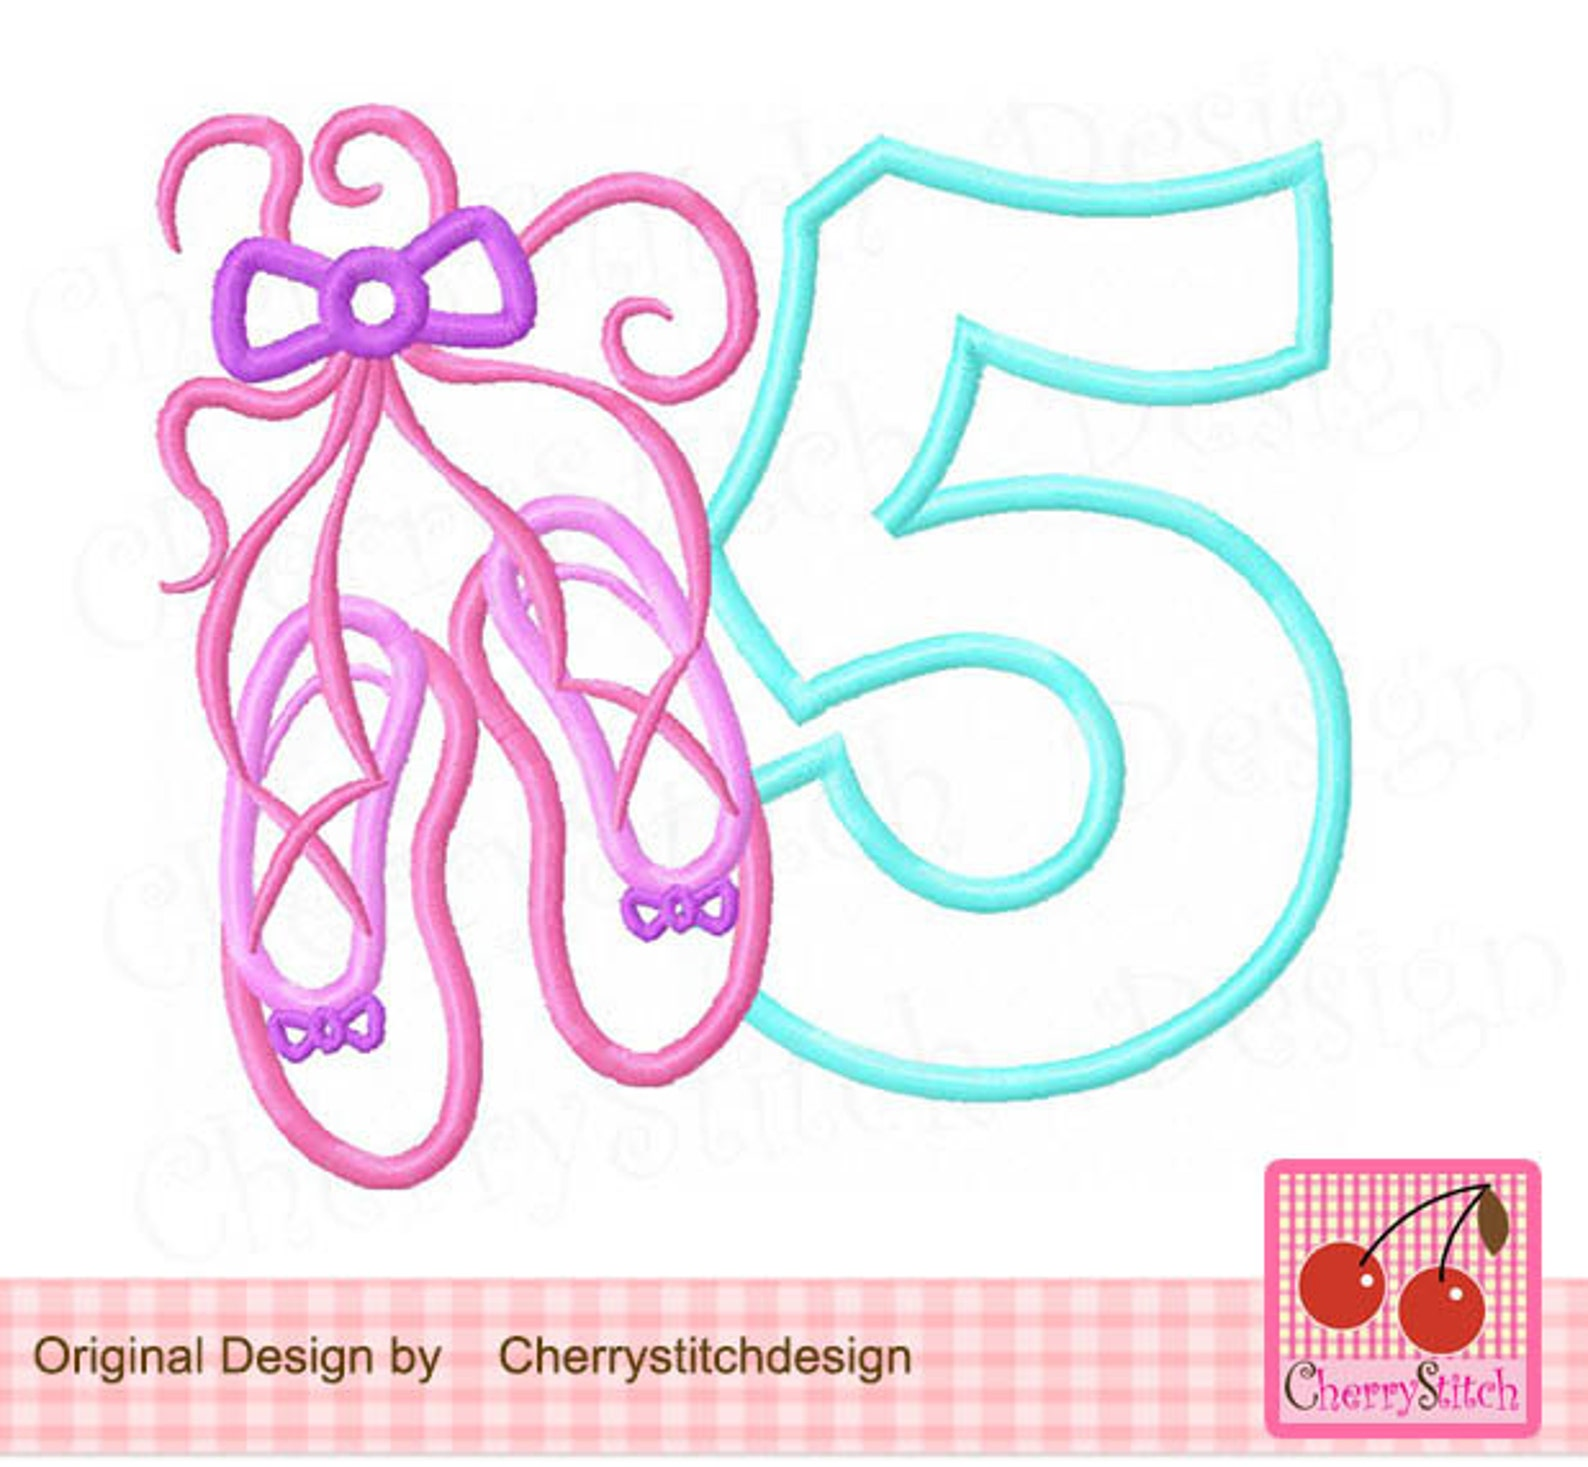 ballet shoes number 5 birthday machine embroidery applique design-4x4,5x5,6x6 inch